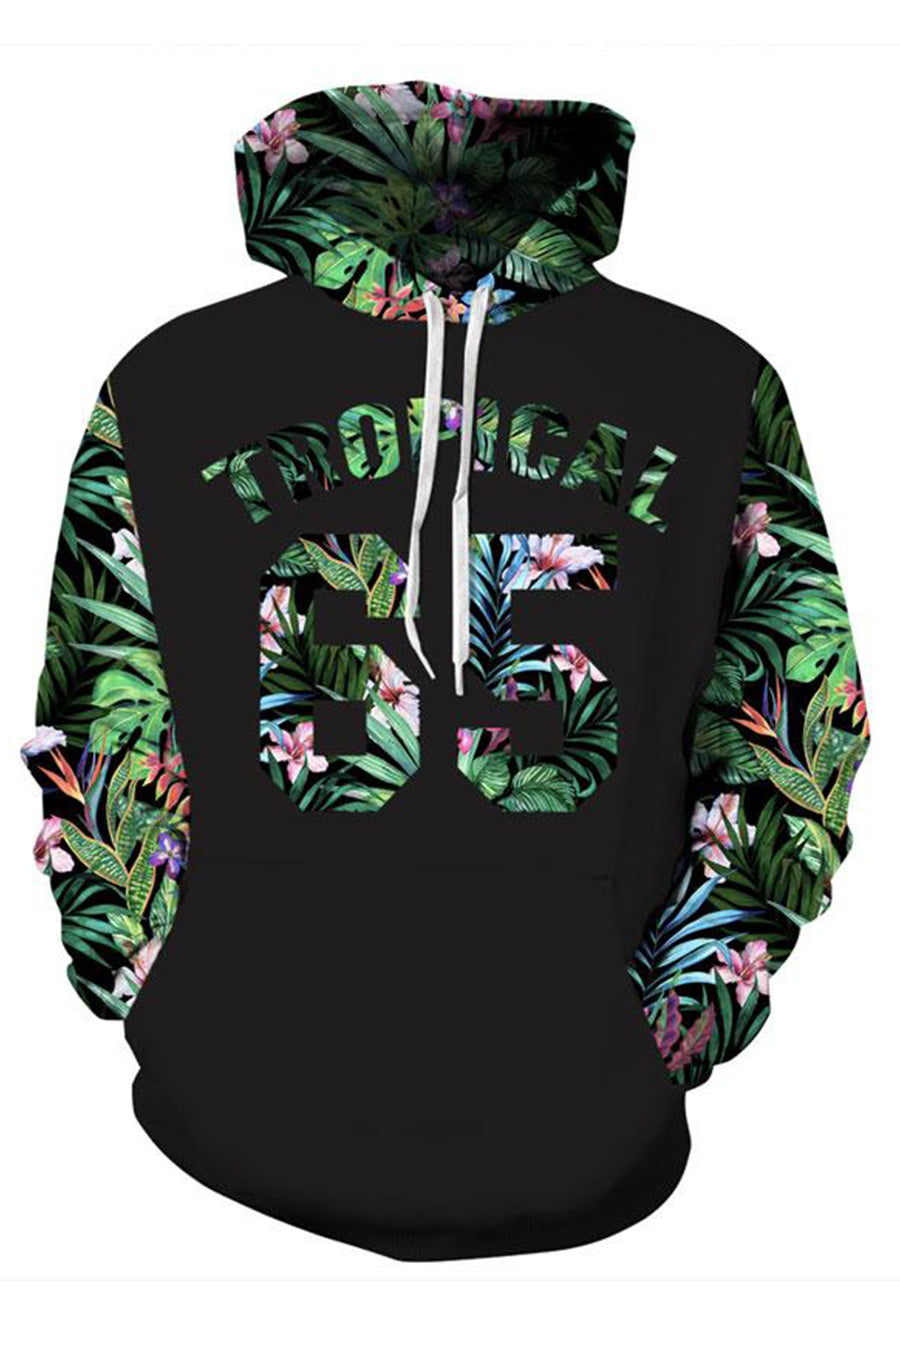 Grunge Floral 3D Hooded Sweater